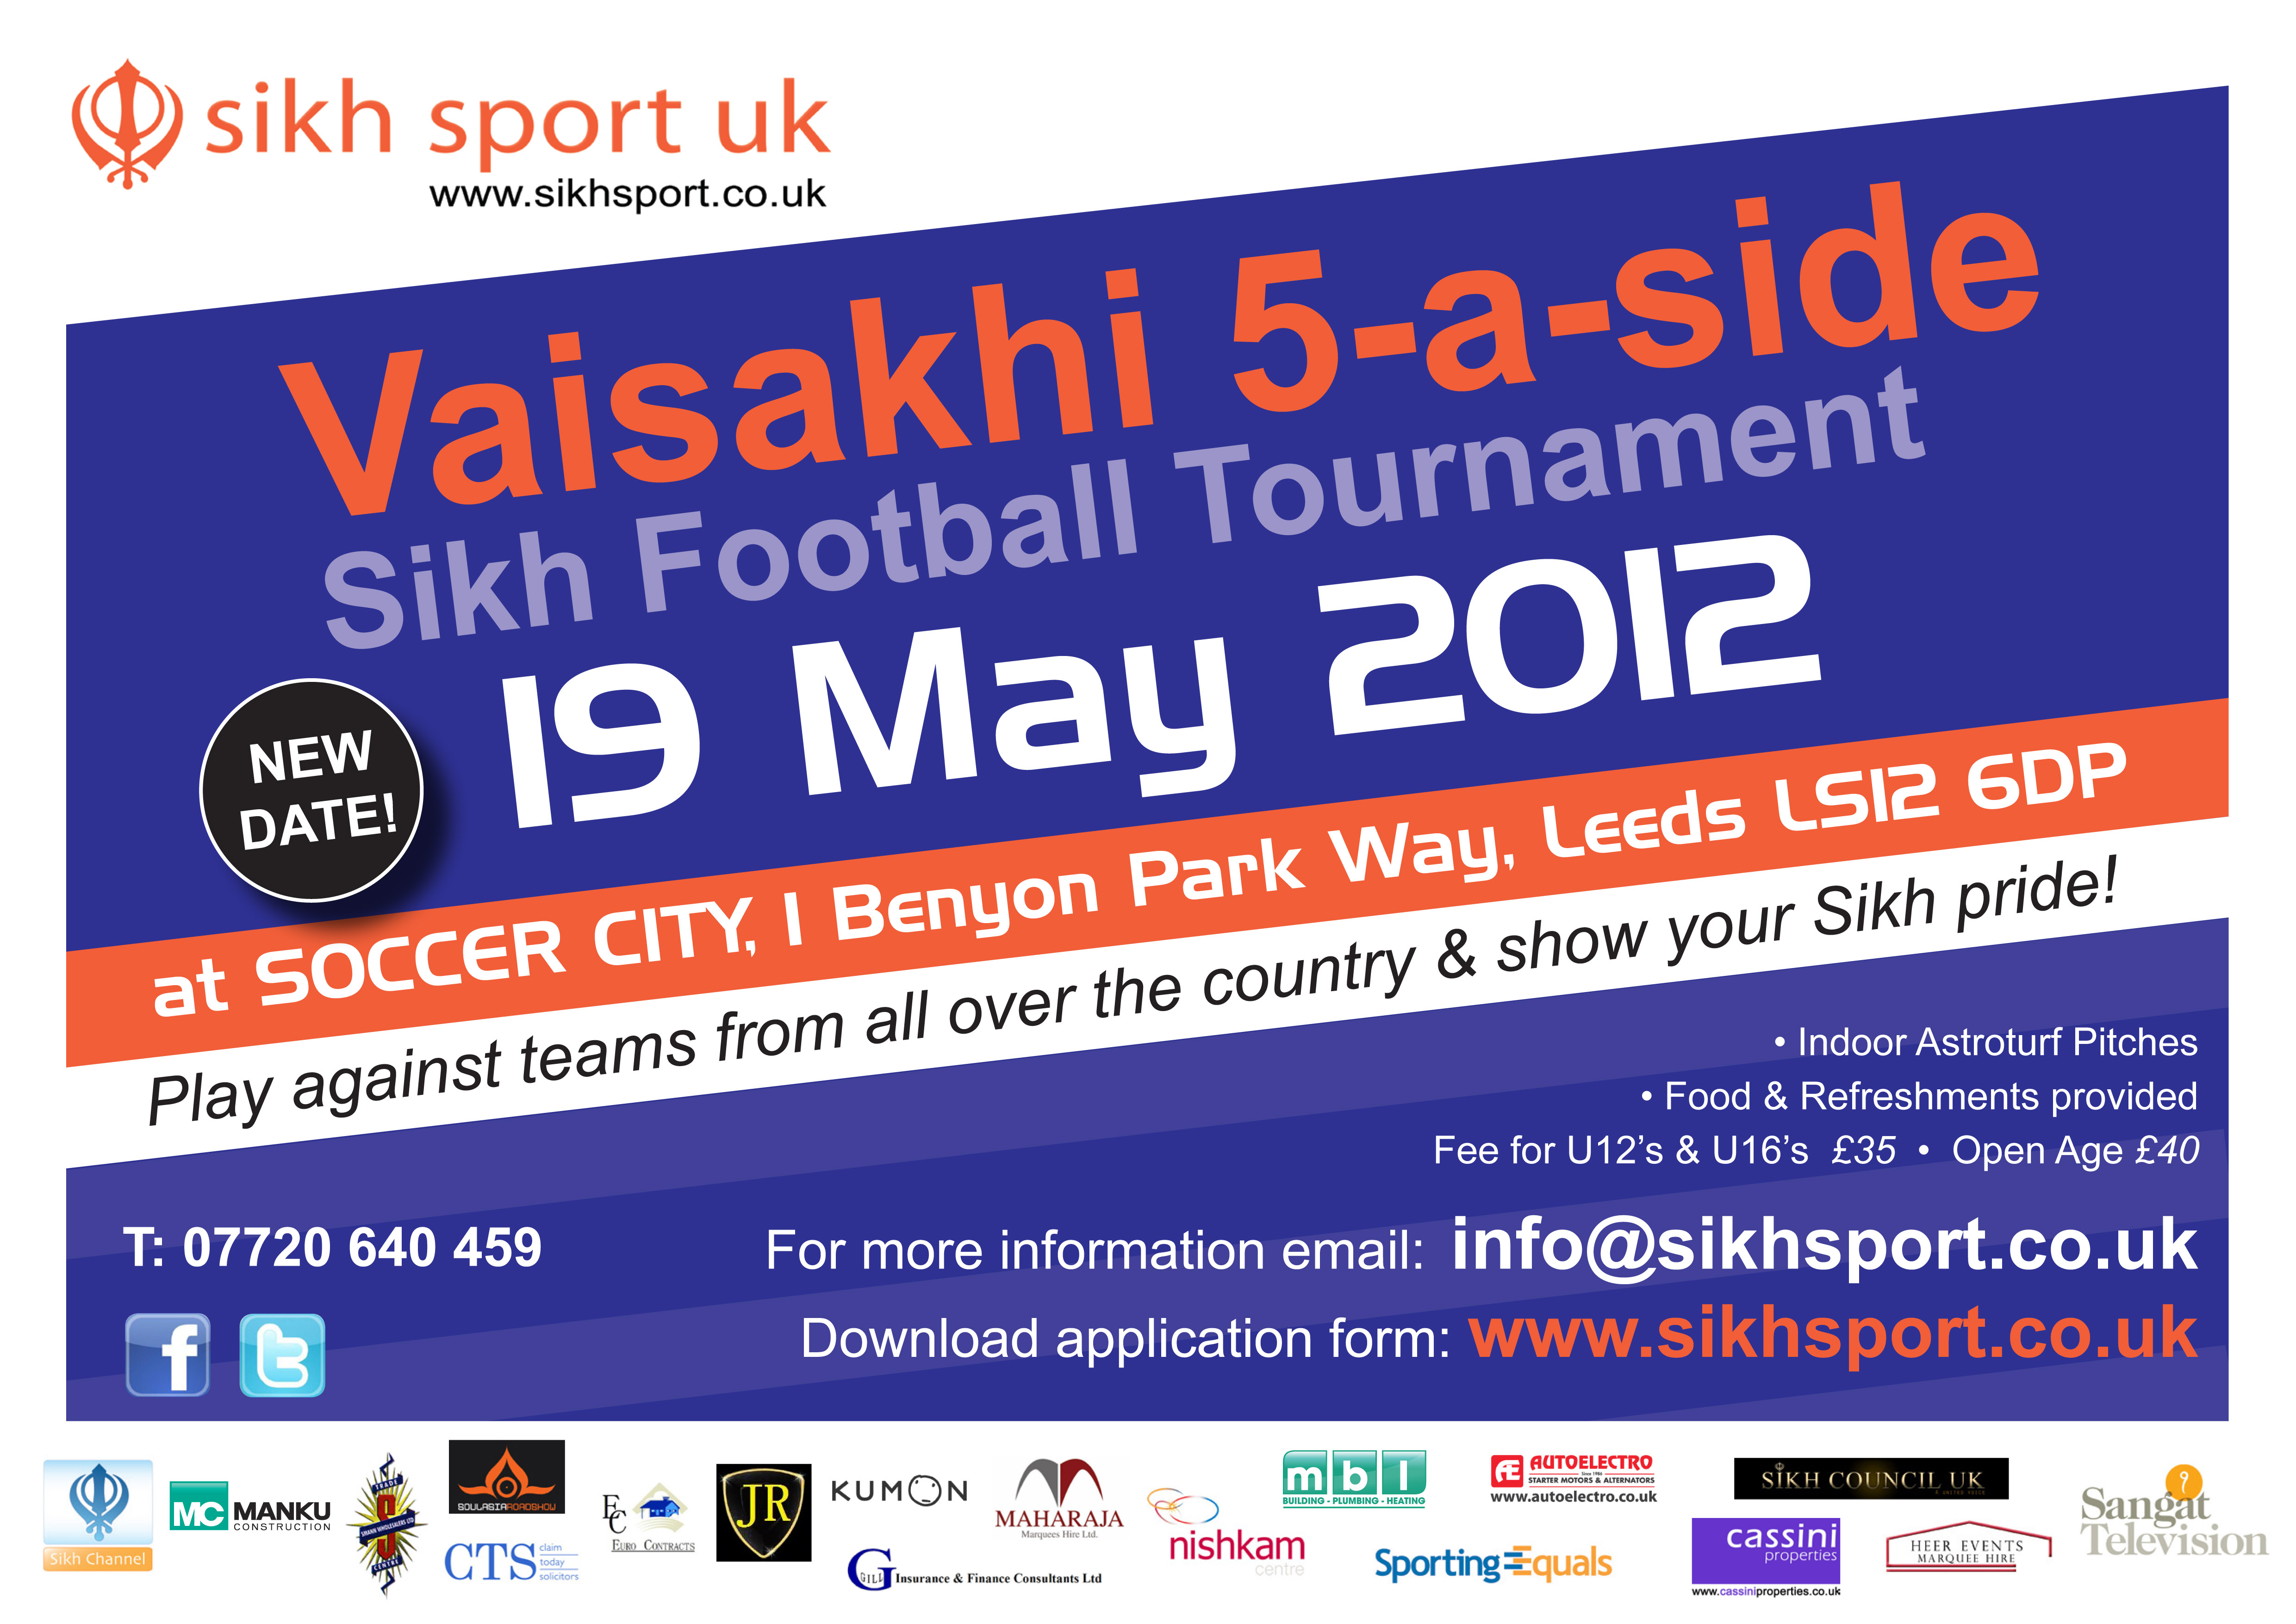 2012 Vaisakhi Tournament